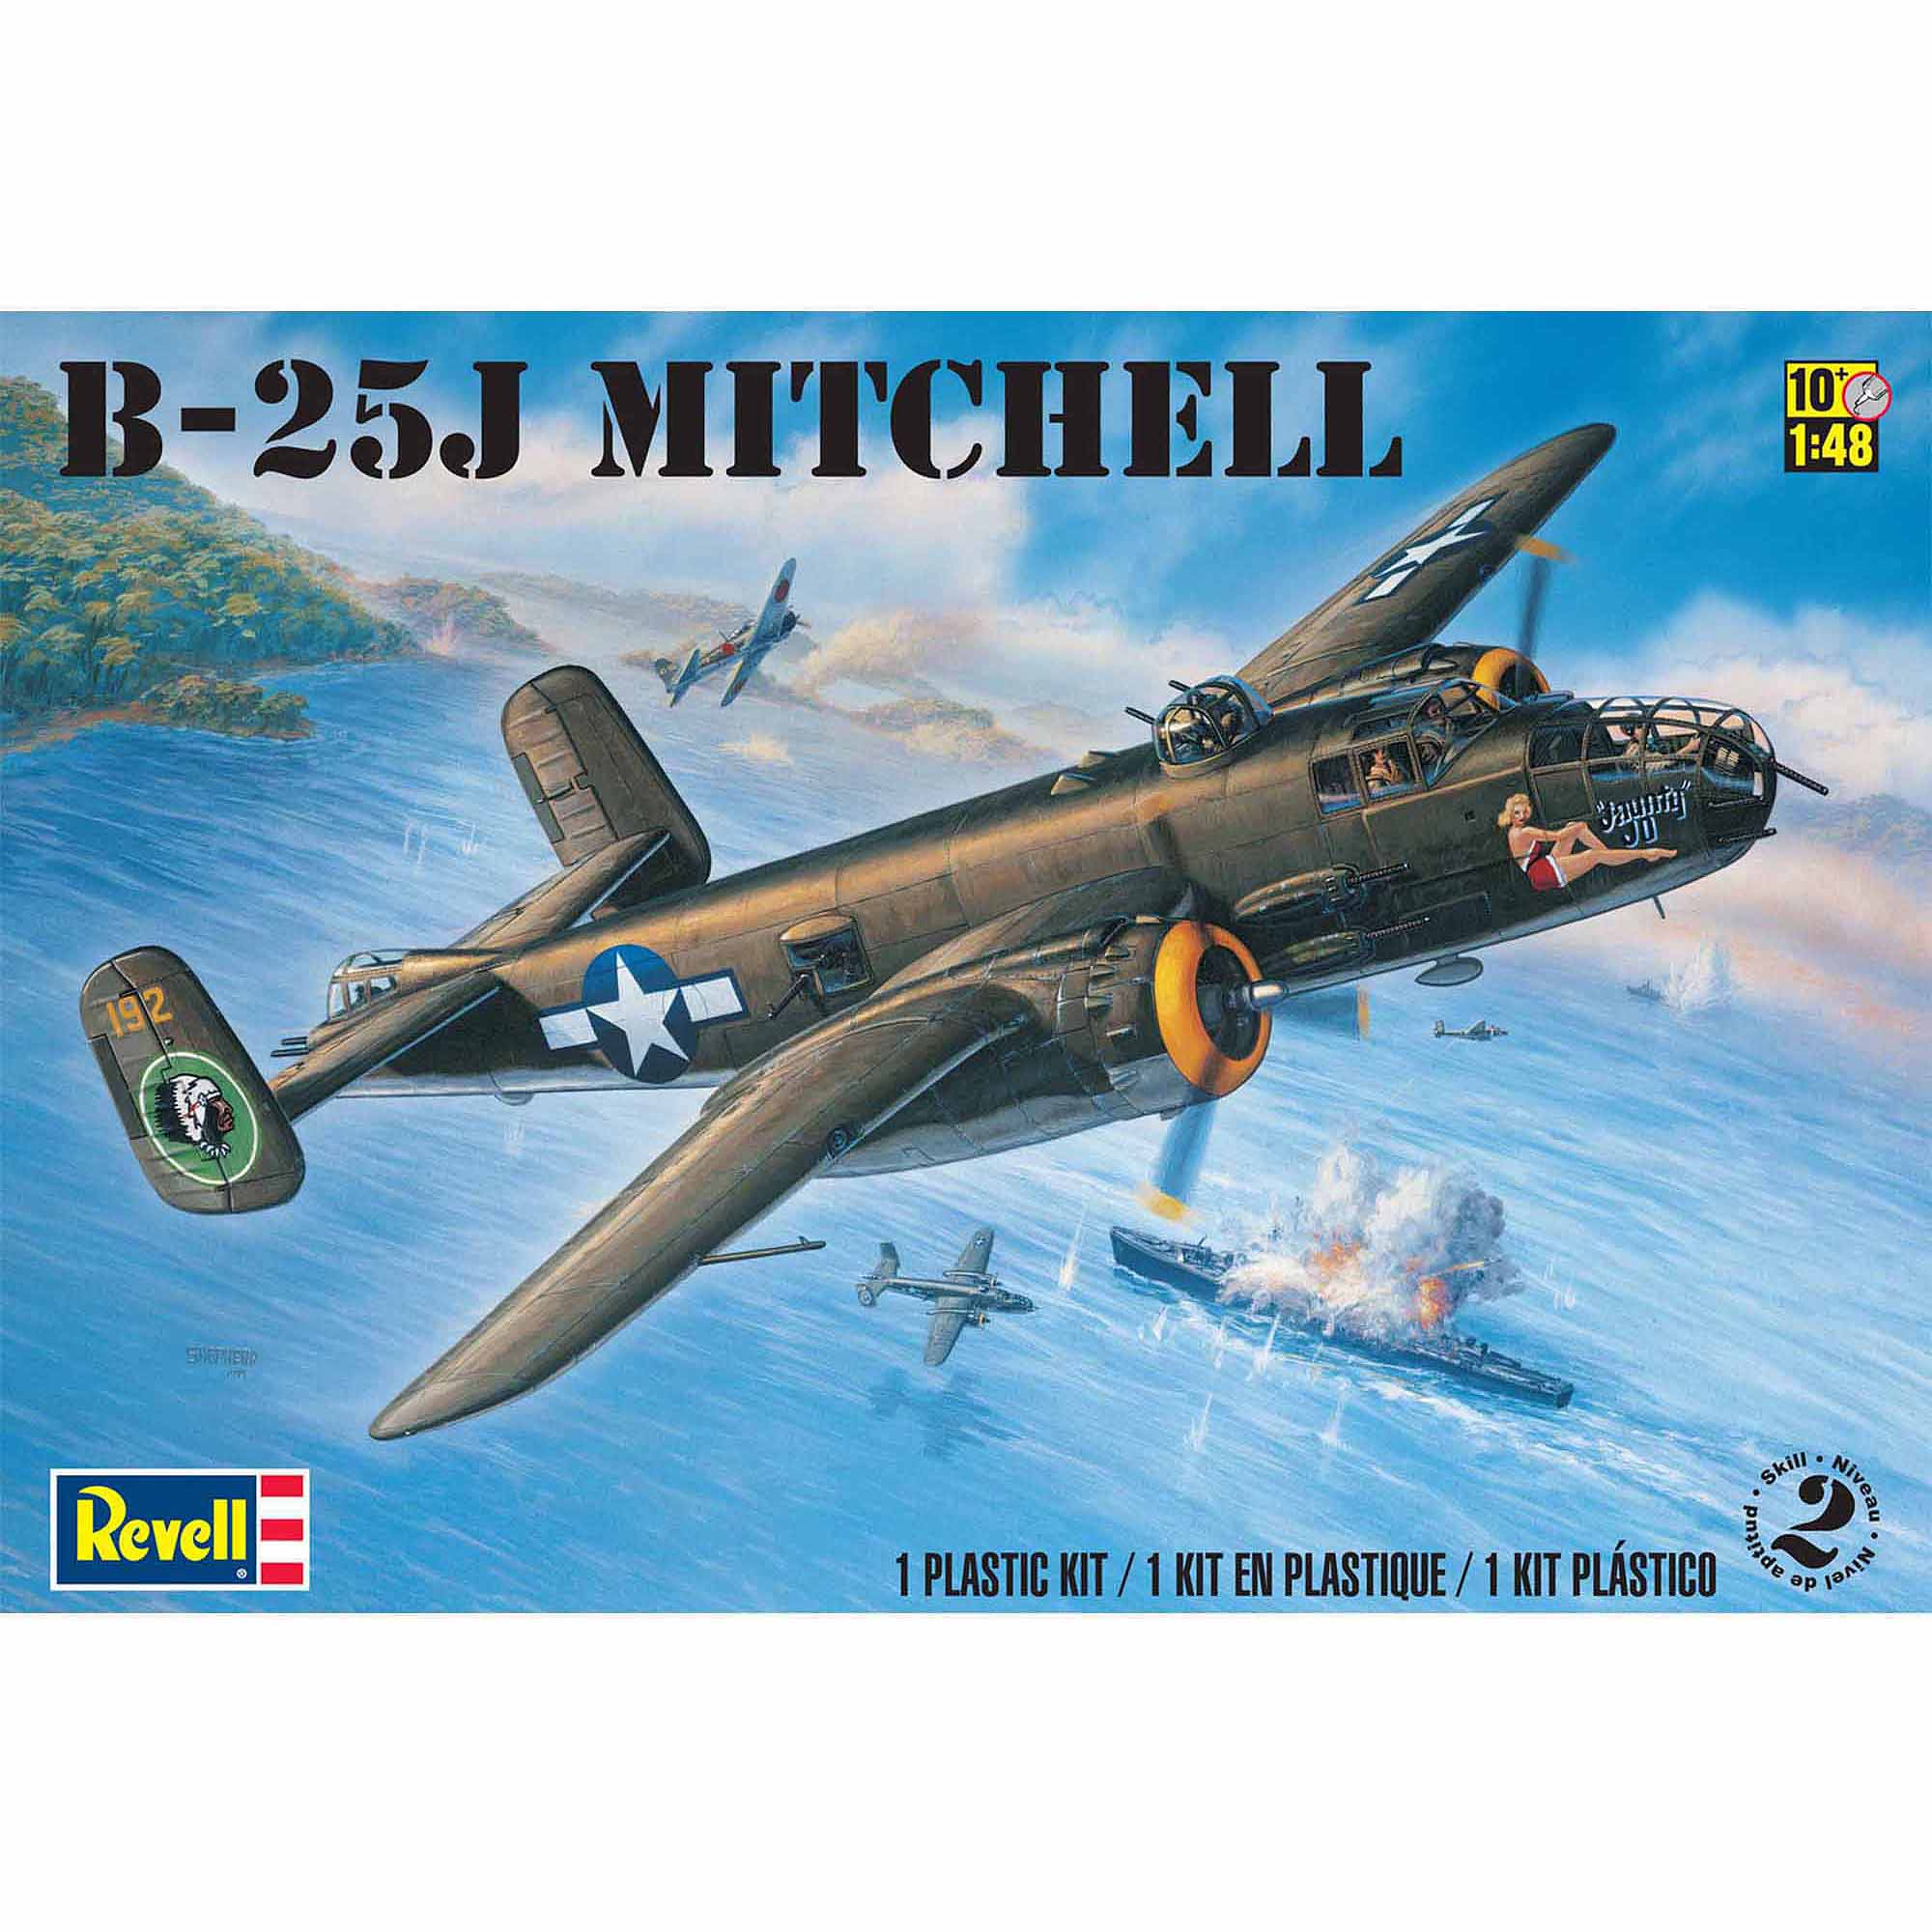 revell 1 48 scale b25j mitchell model kit walmart com